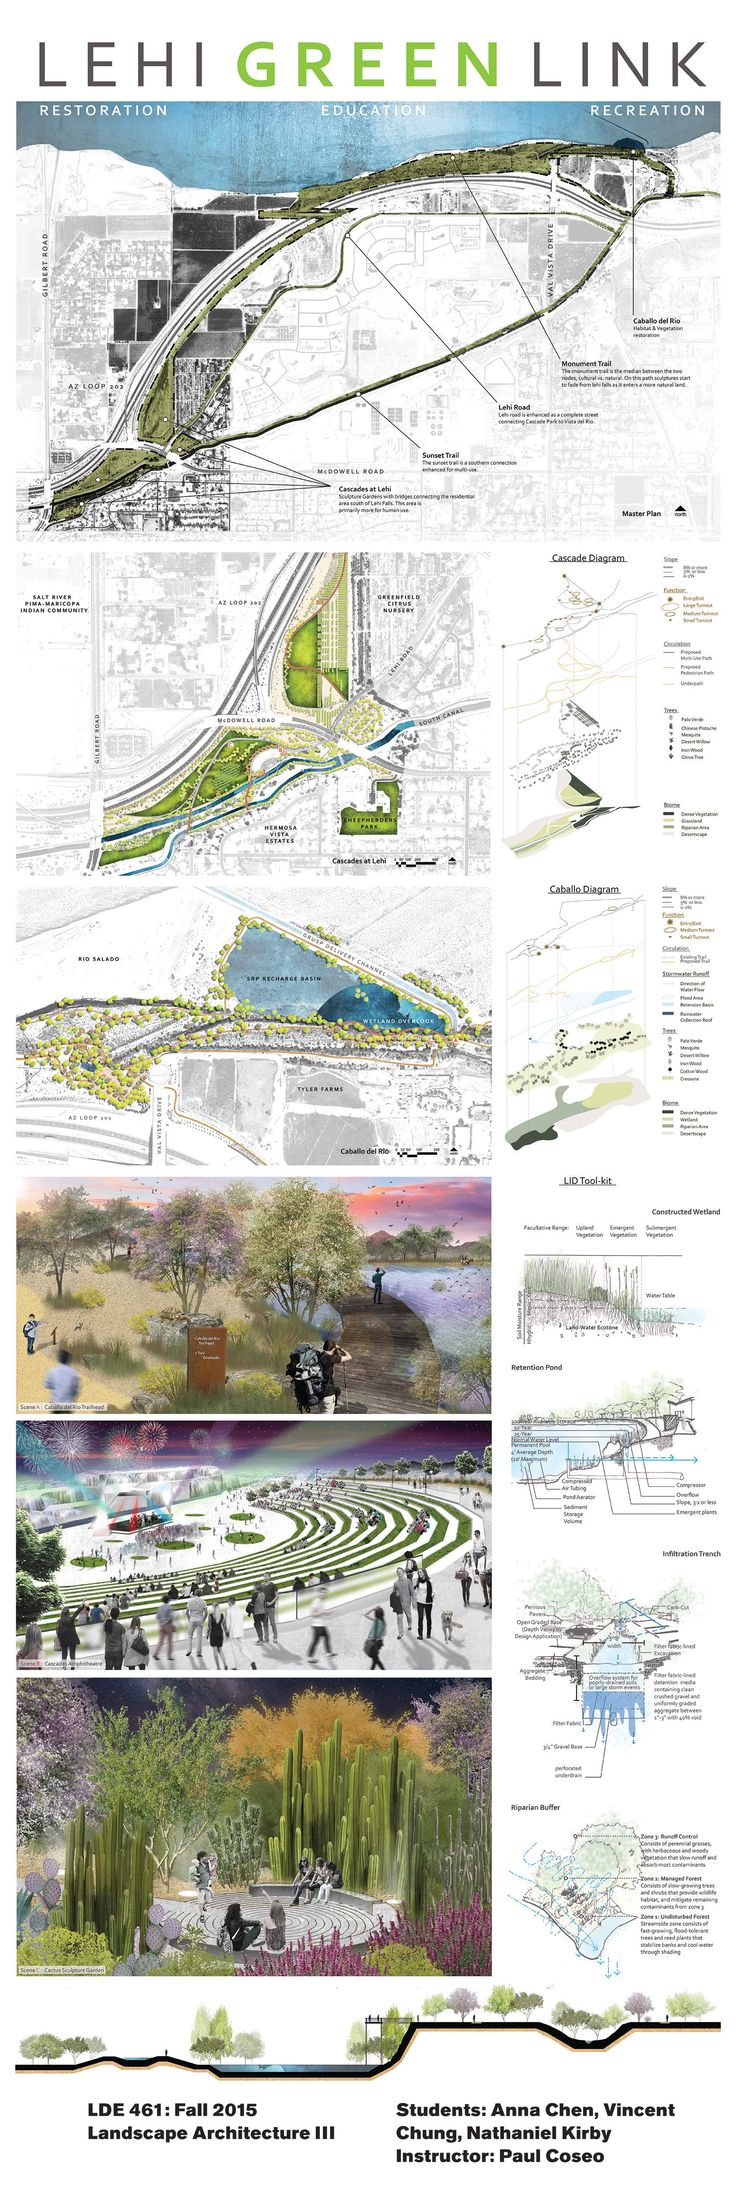 Learn more about the Landscape Architecture program at: https://design.asu.edu/degree-programs/landscape-architecture